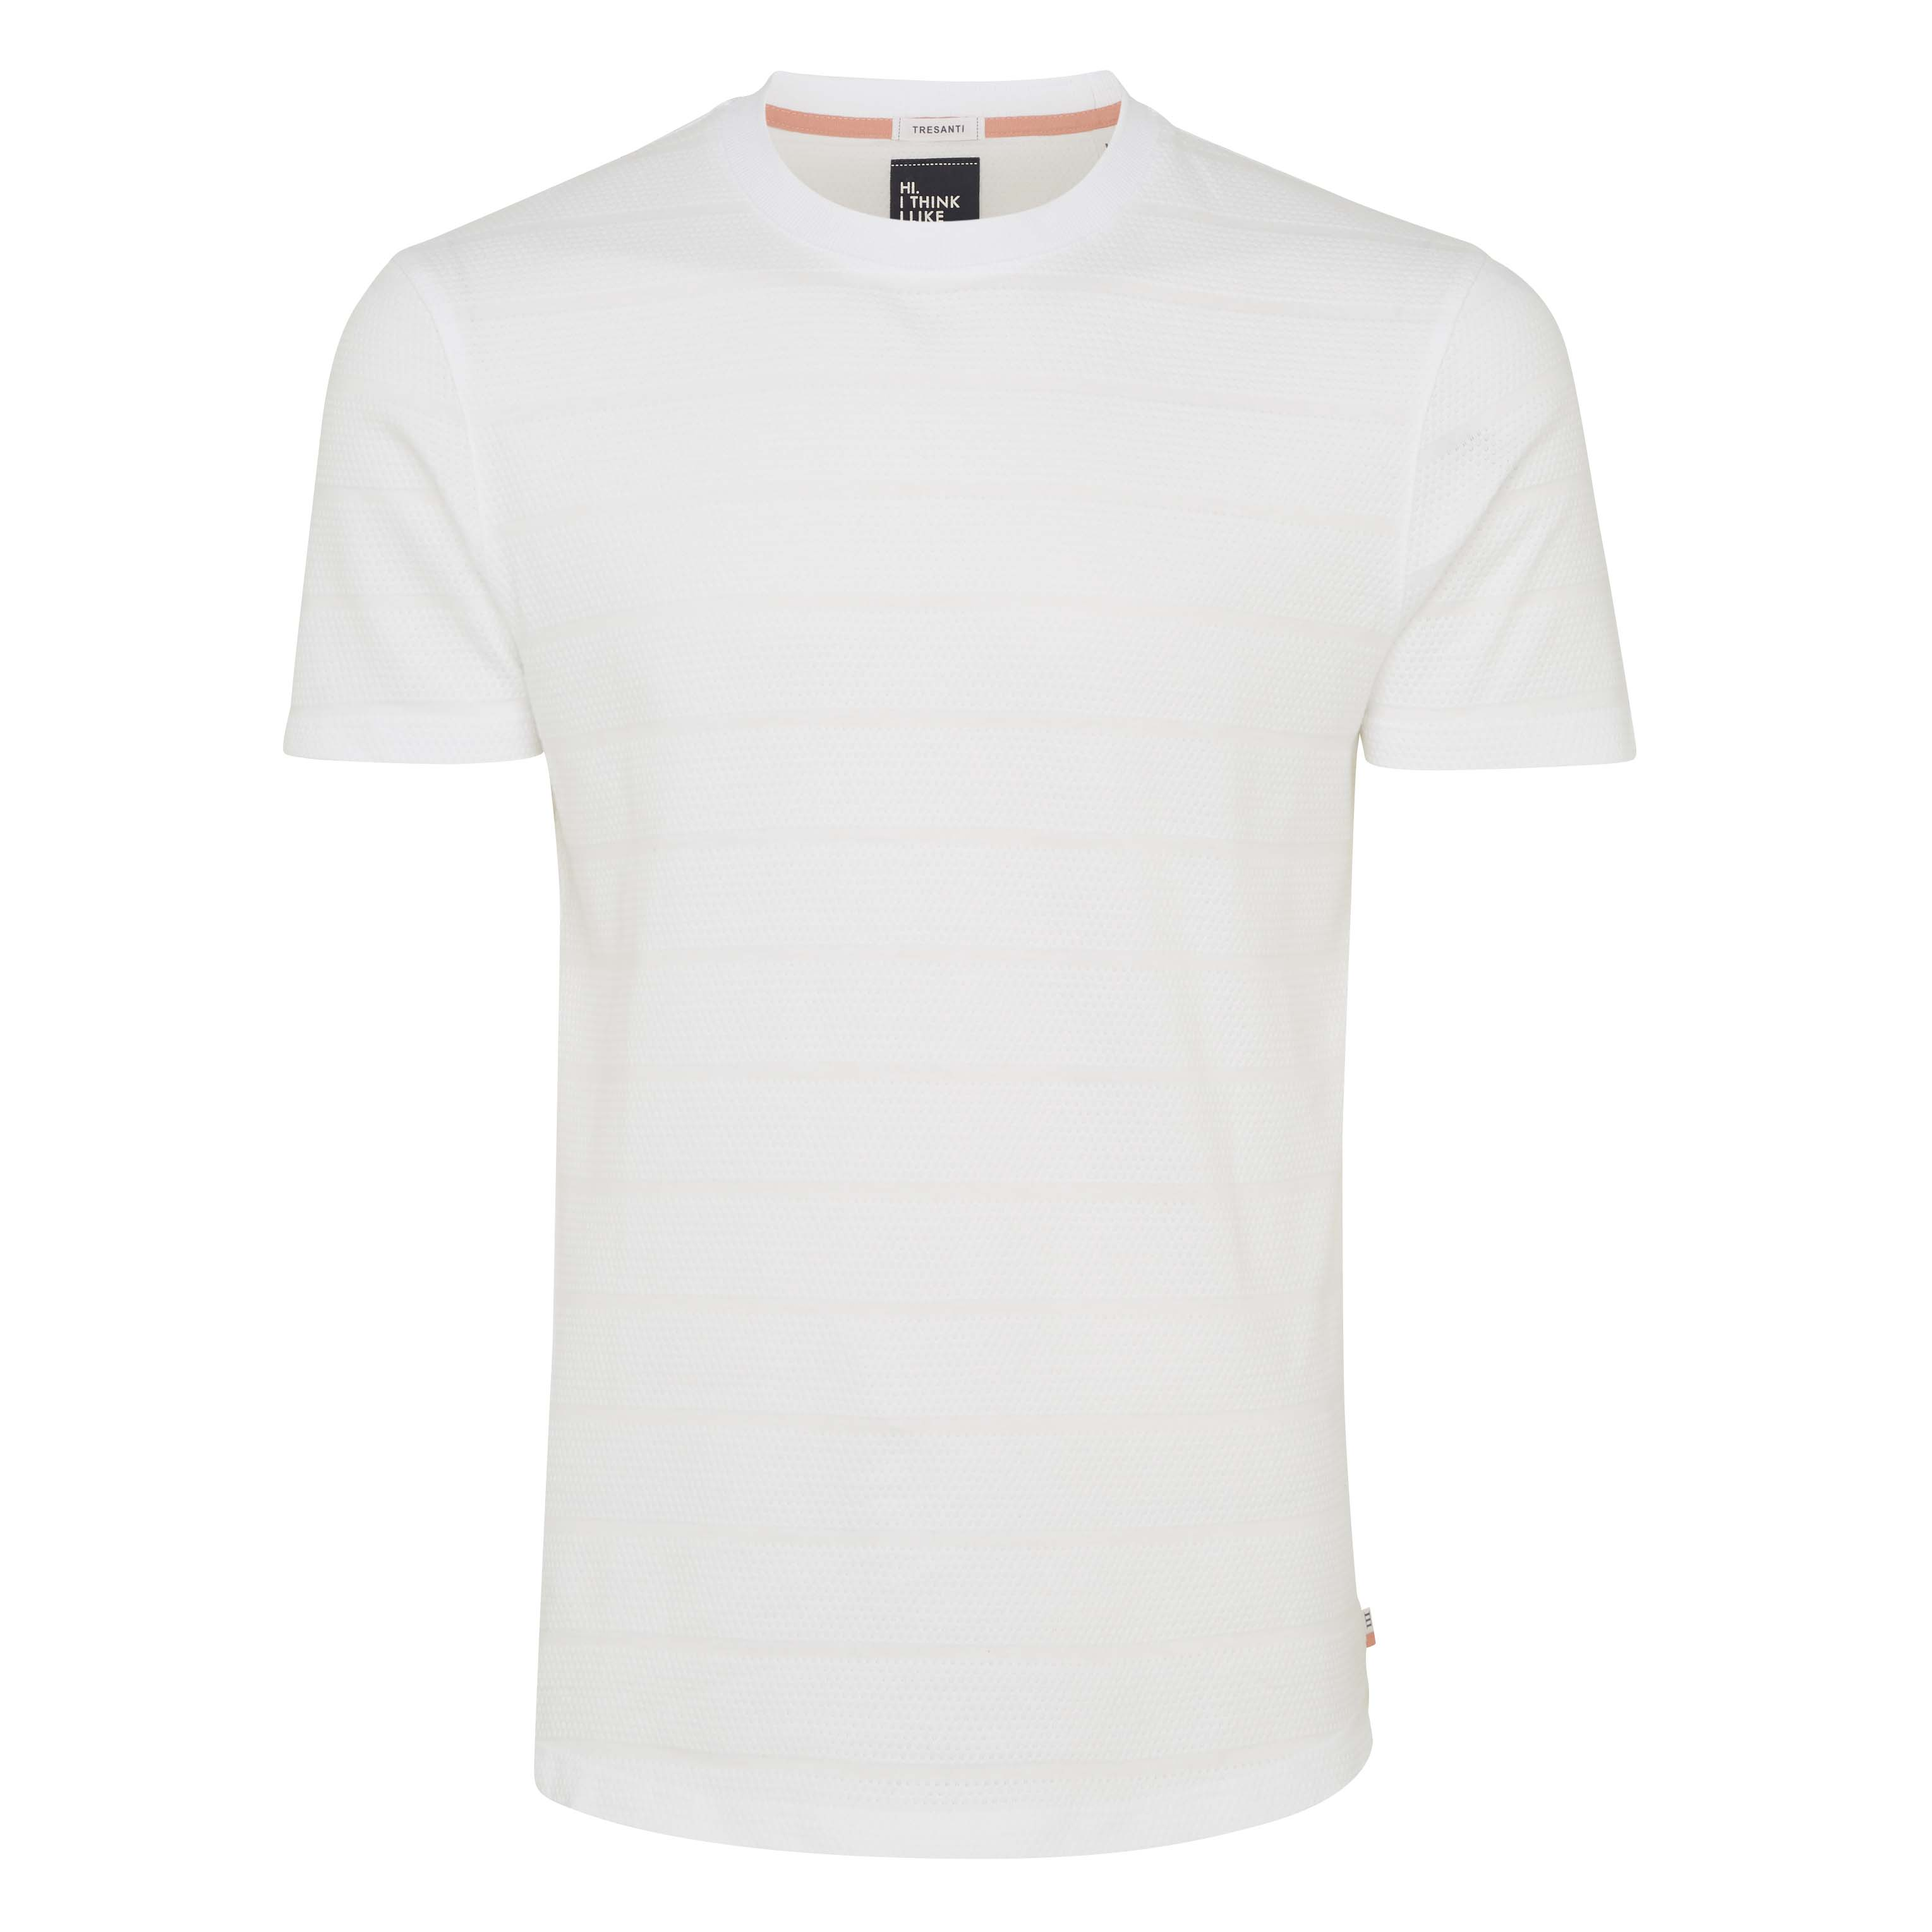 Tony | T-shirt structure white